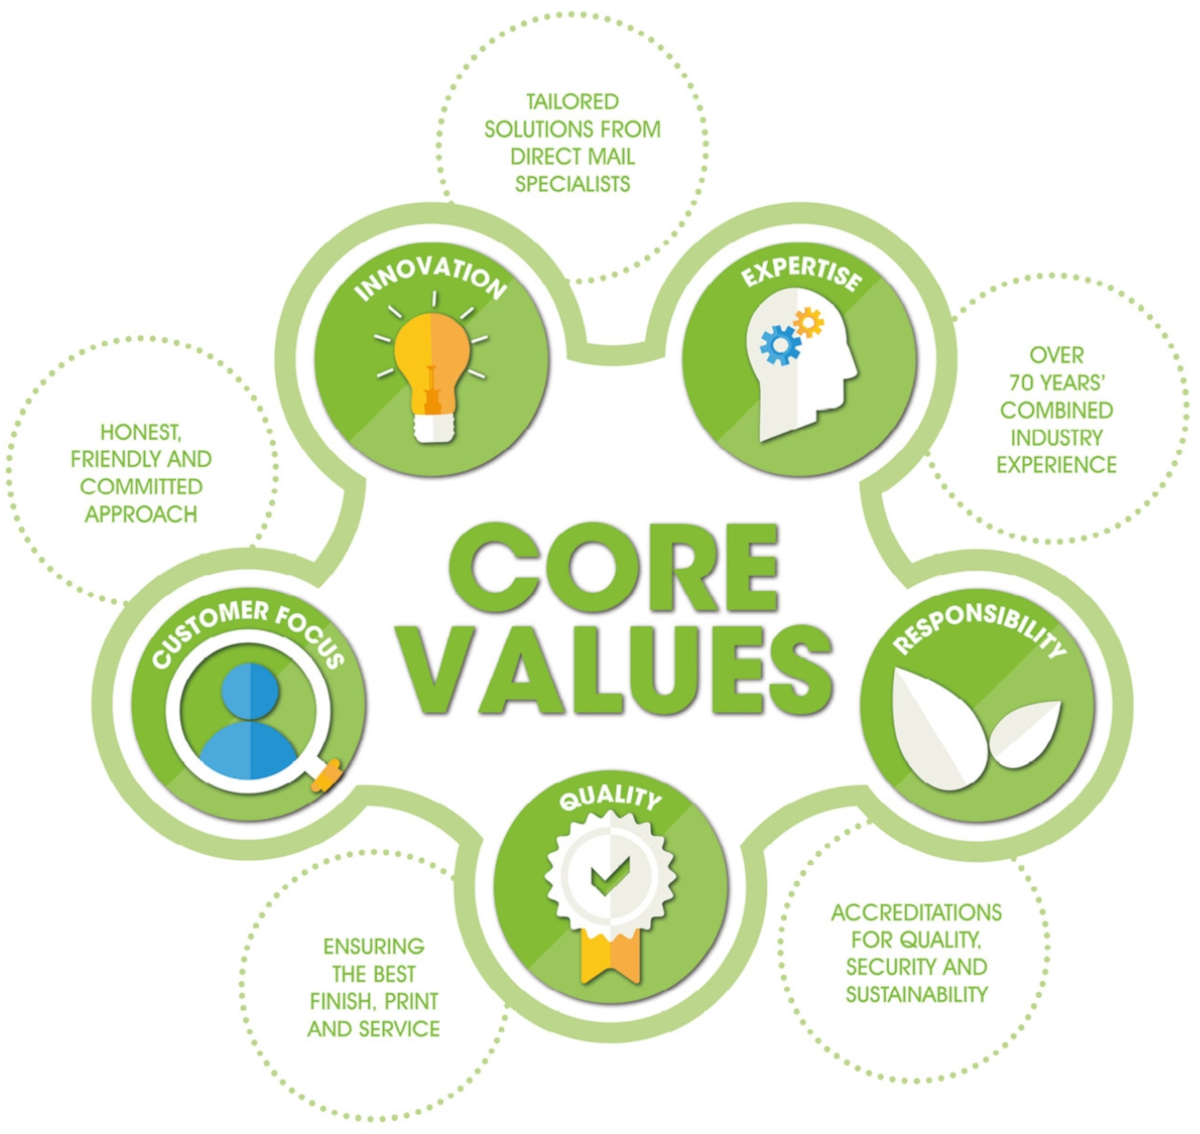 DMP's Core Values